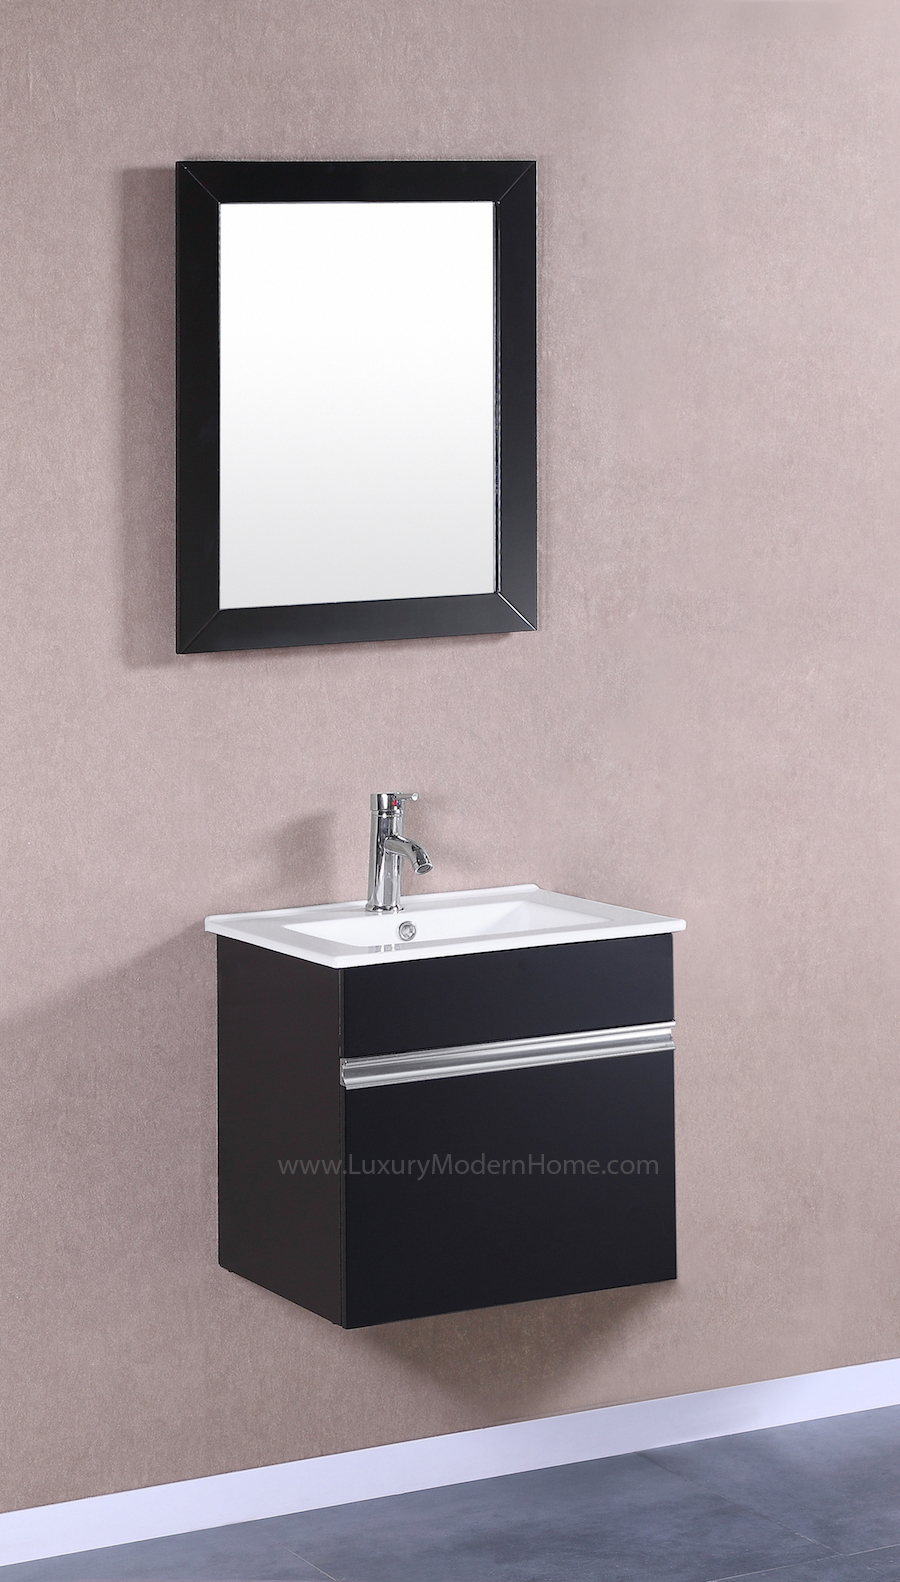 PETRONIUS 20 Small Black Vanity Sink